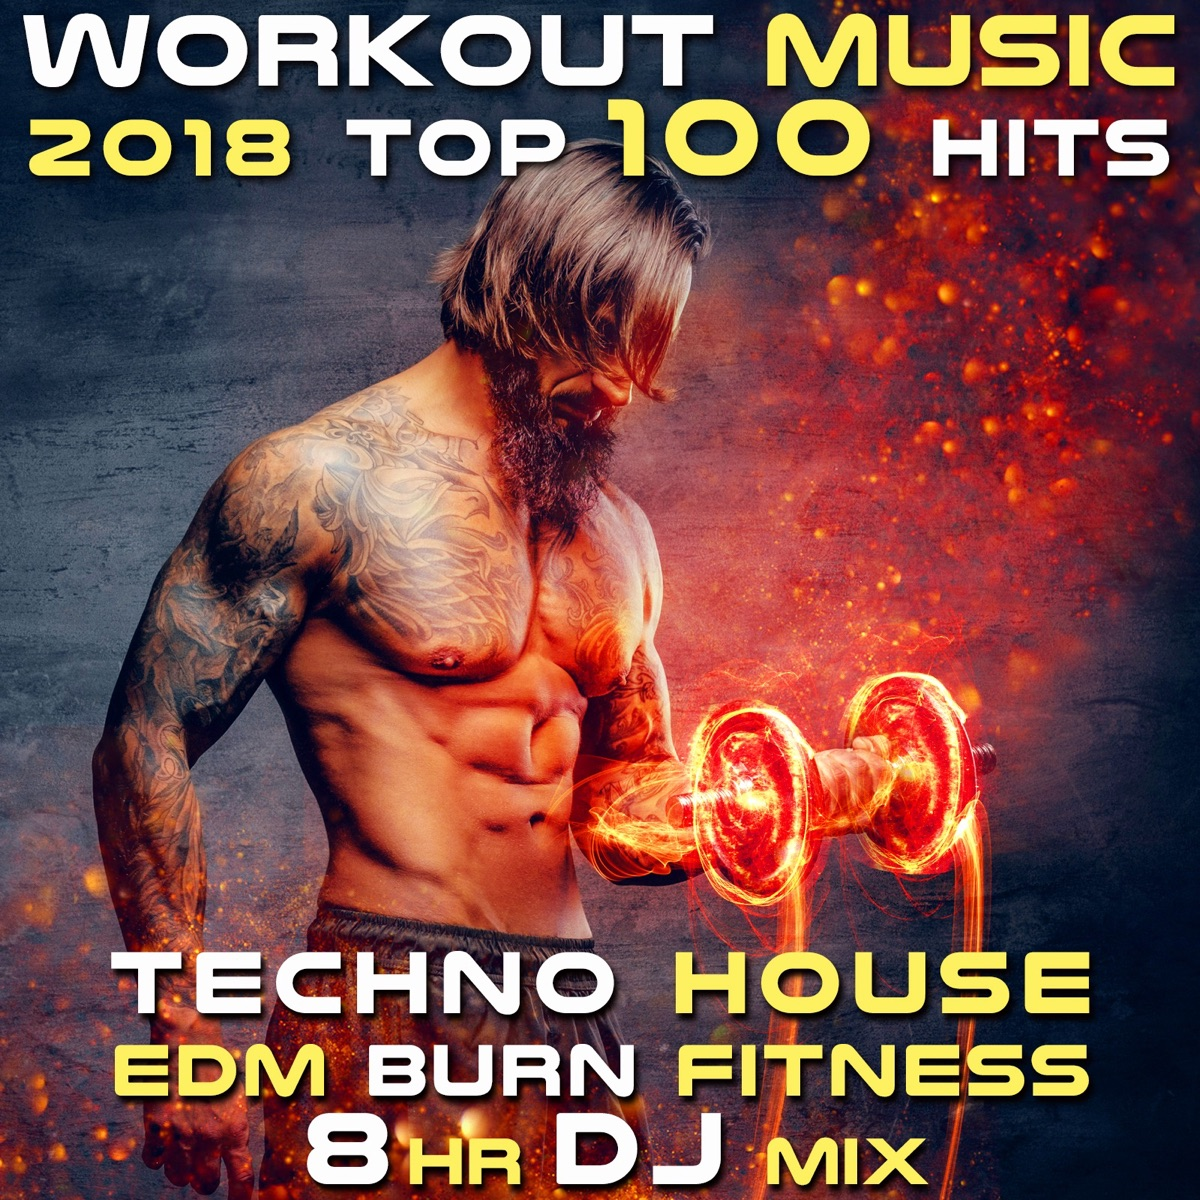 Workout Music 2018 Top 100 Hits Techno House EDM Burn Fitness 8 Hr